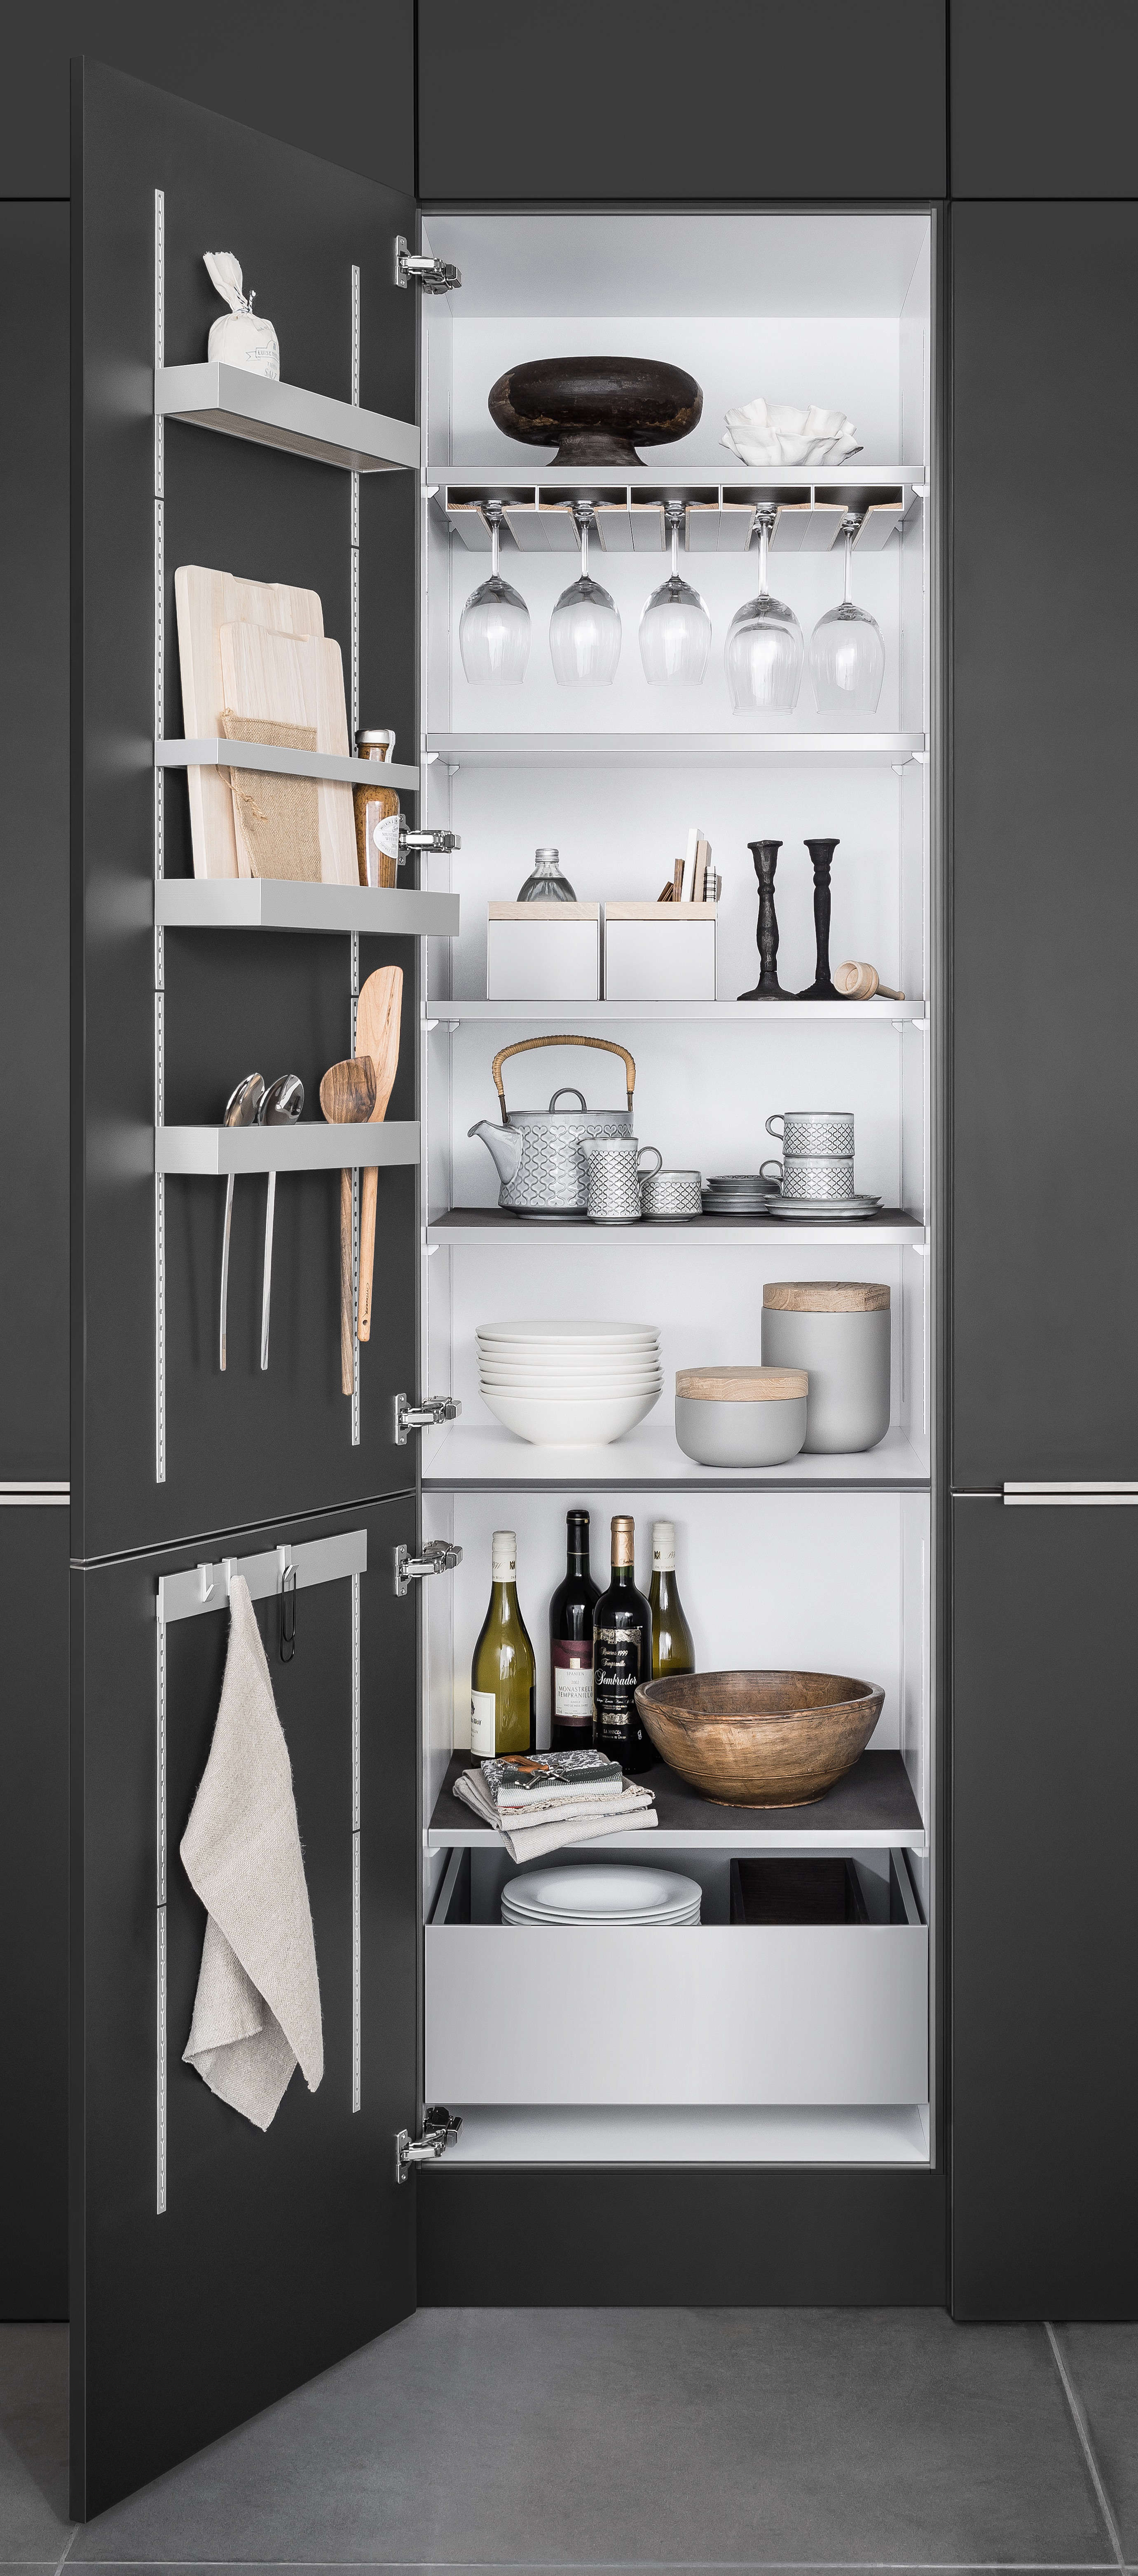 Kitchen Cabinet Storage From SieMatic Of Germany   Remodelista